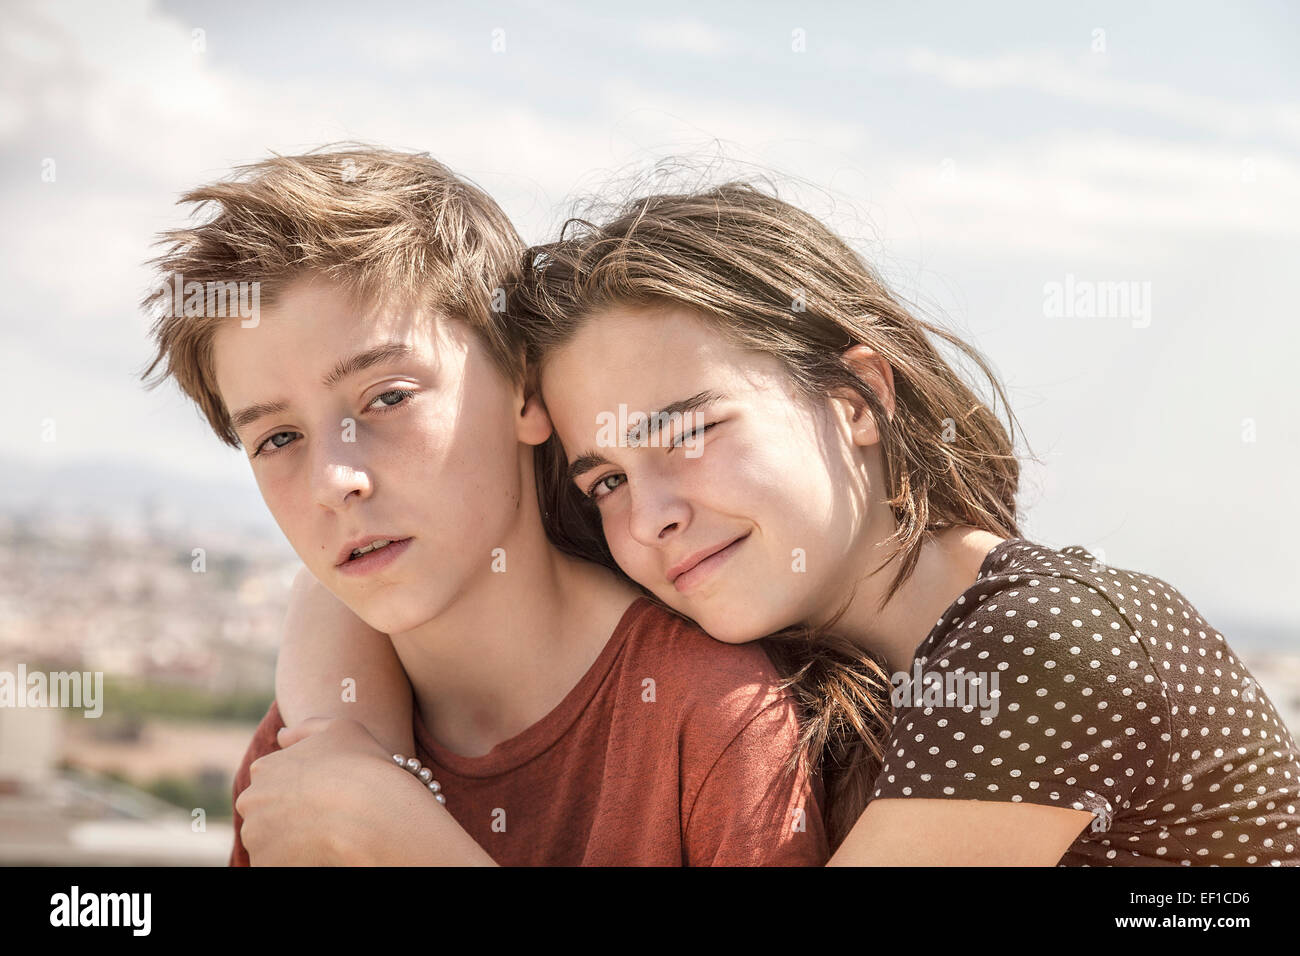 sister hugging her brother, toned image - Stock Image